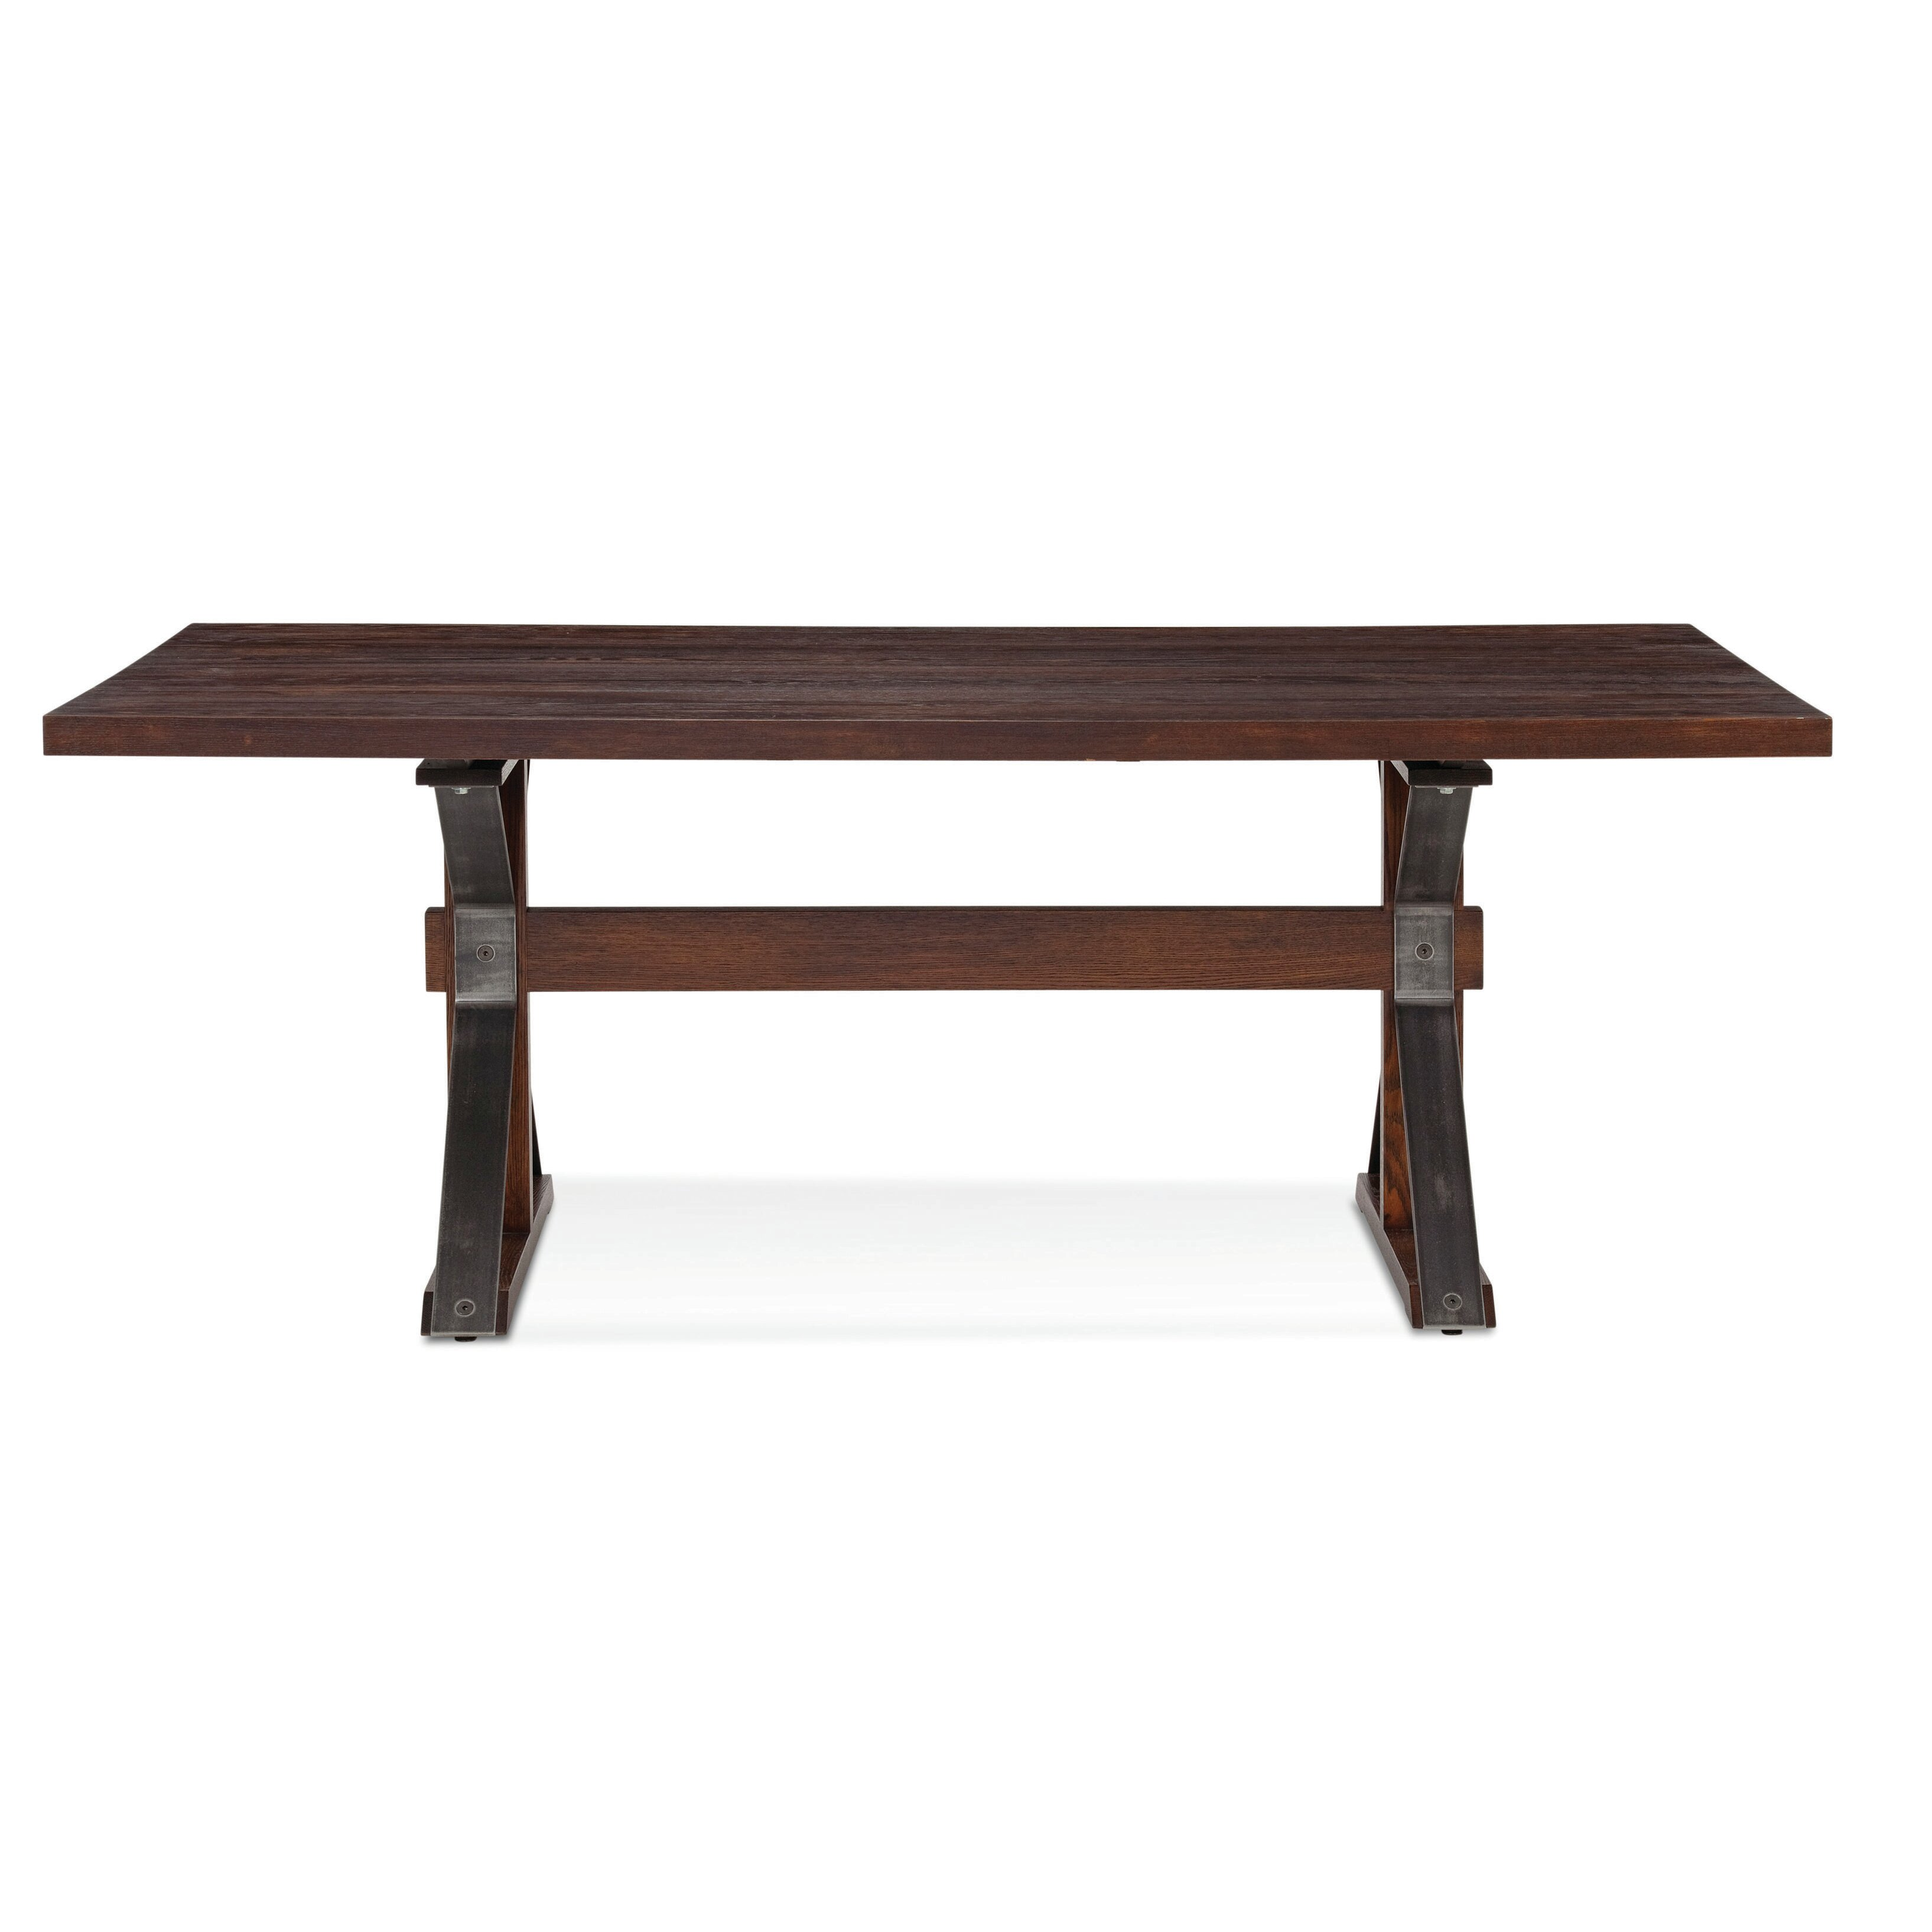 Saloom furniture tremont dining table reviews wayfair for I furniture reviews